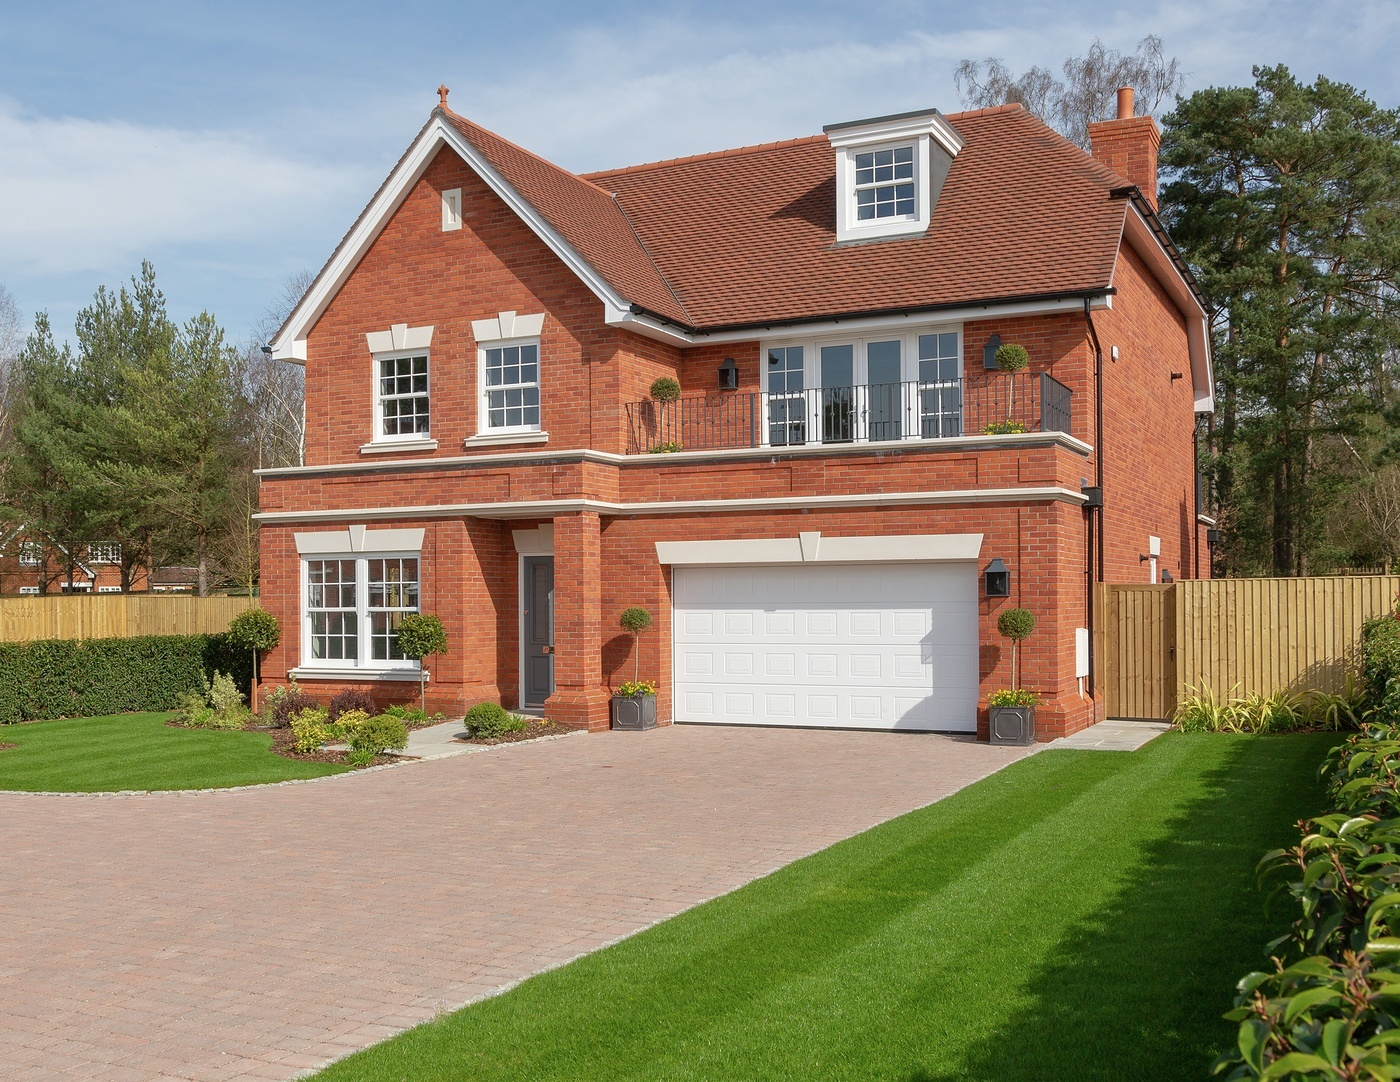 millgate-homes-ascot-our-work-developers-ascot-design-view3.jpg